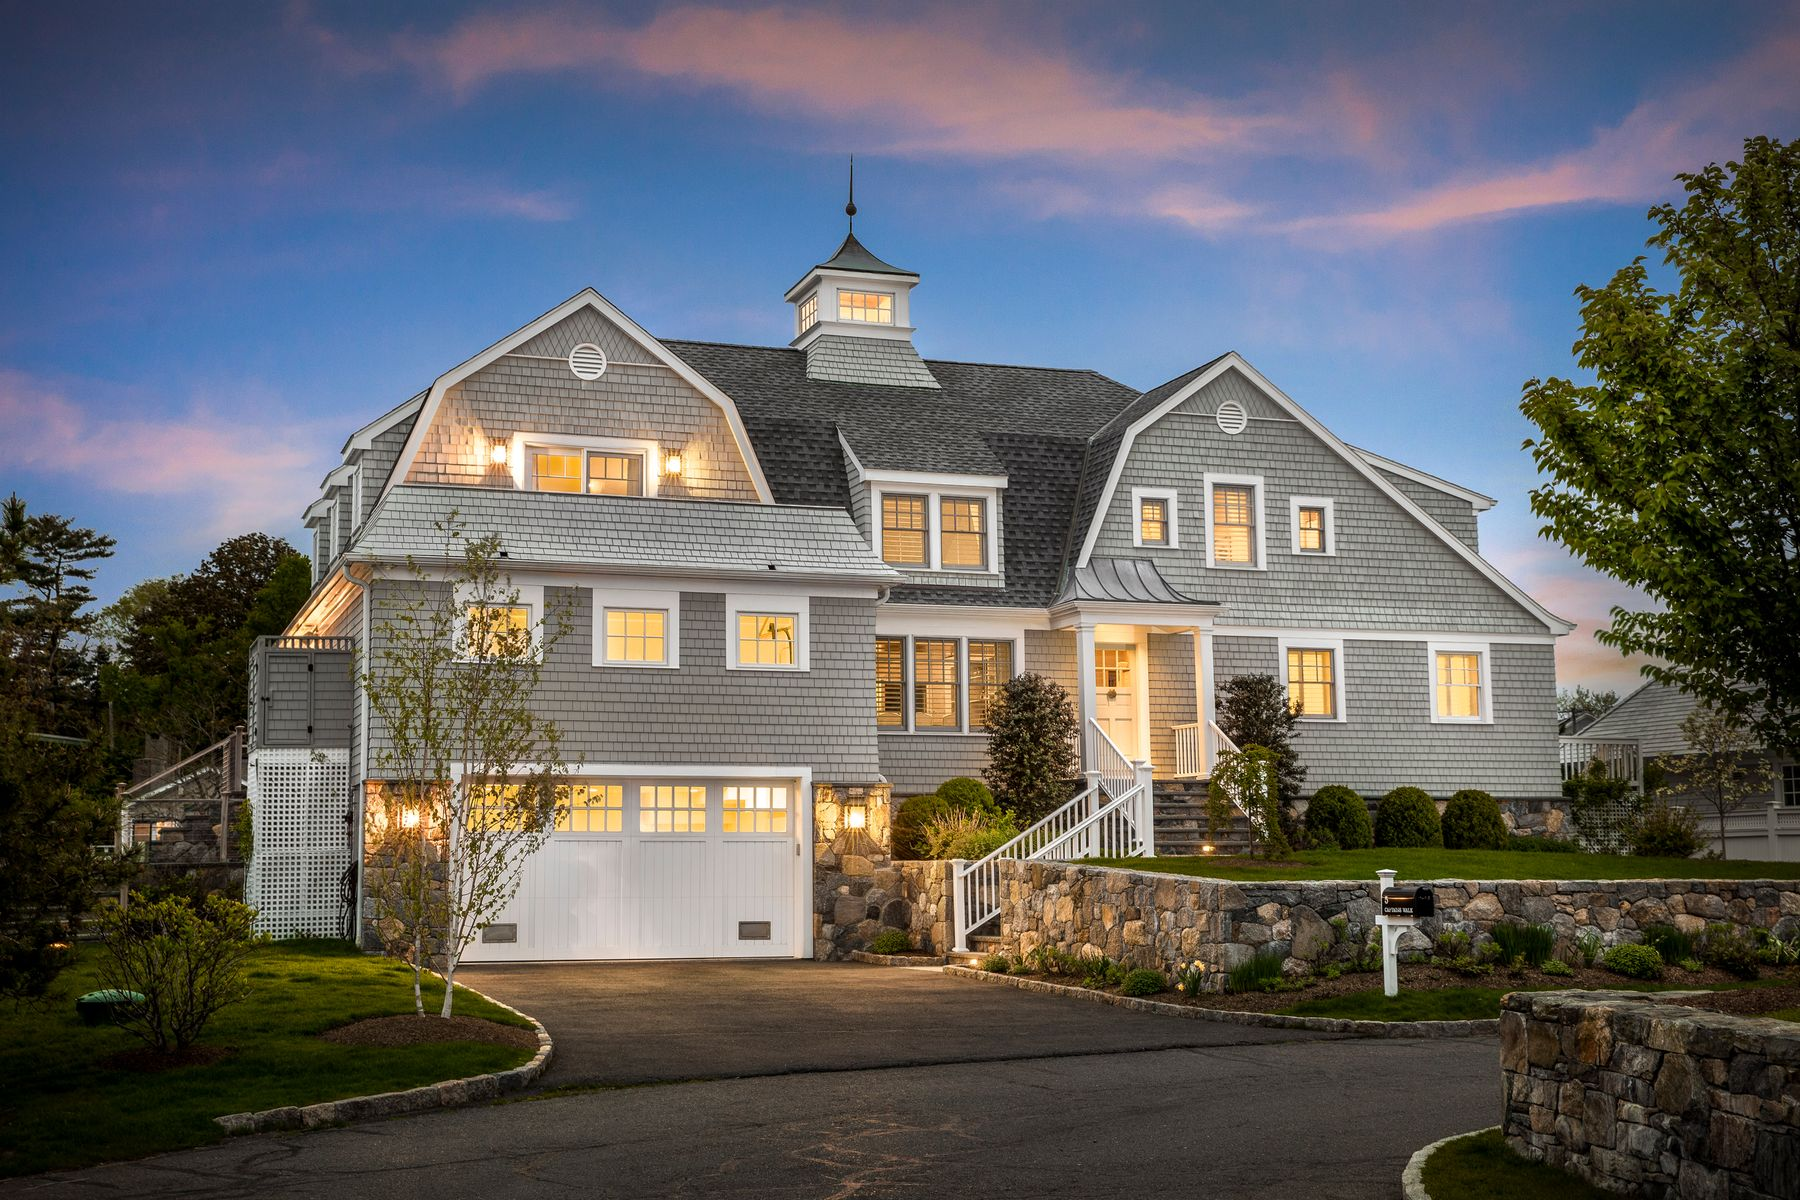 Single Family Homes for Sale at 5 Captains Walk Norwalk, Connecticut 06853 United States